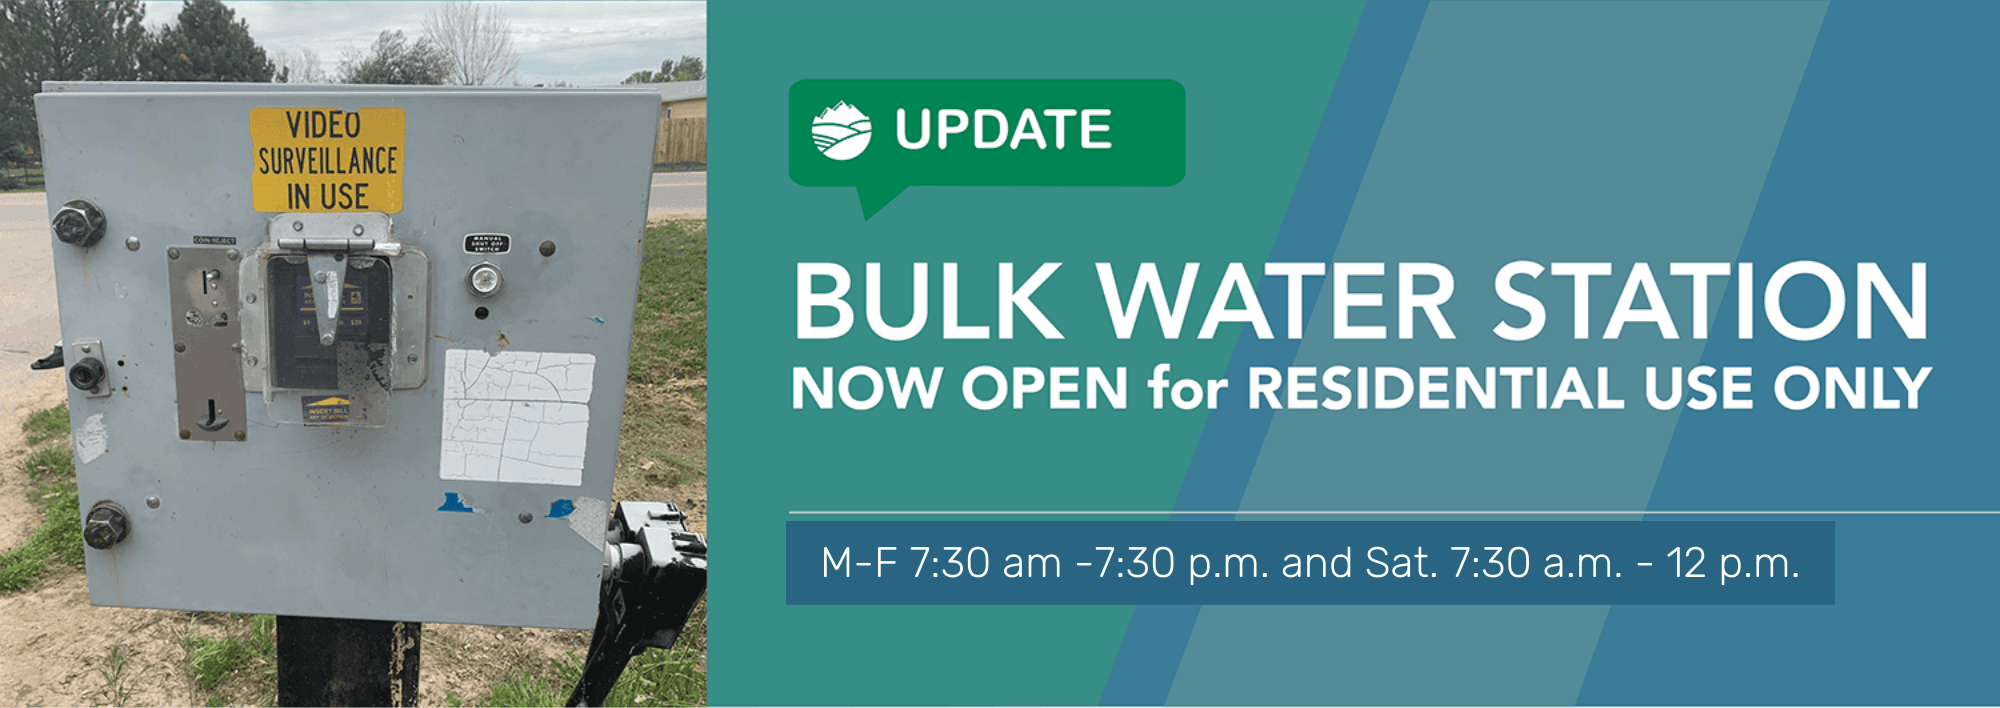 Bulk Water Station Hours M-F 7:30 am -7:30 p.m. and Sat. 7:30 a.m. - 12 p.m.